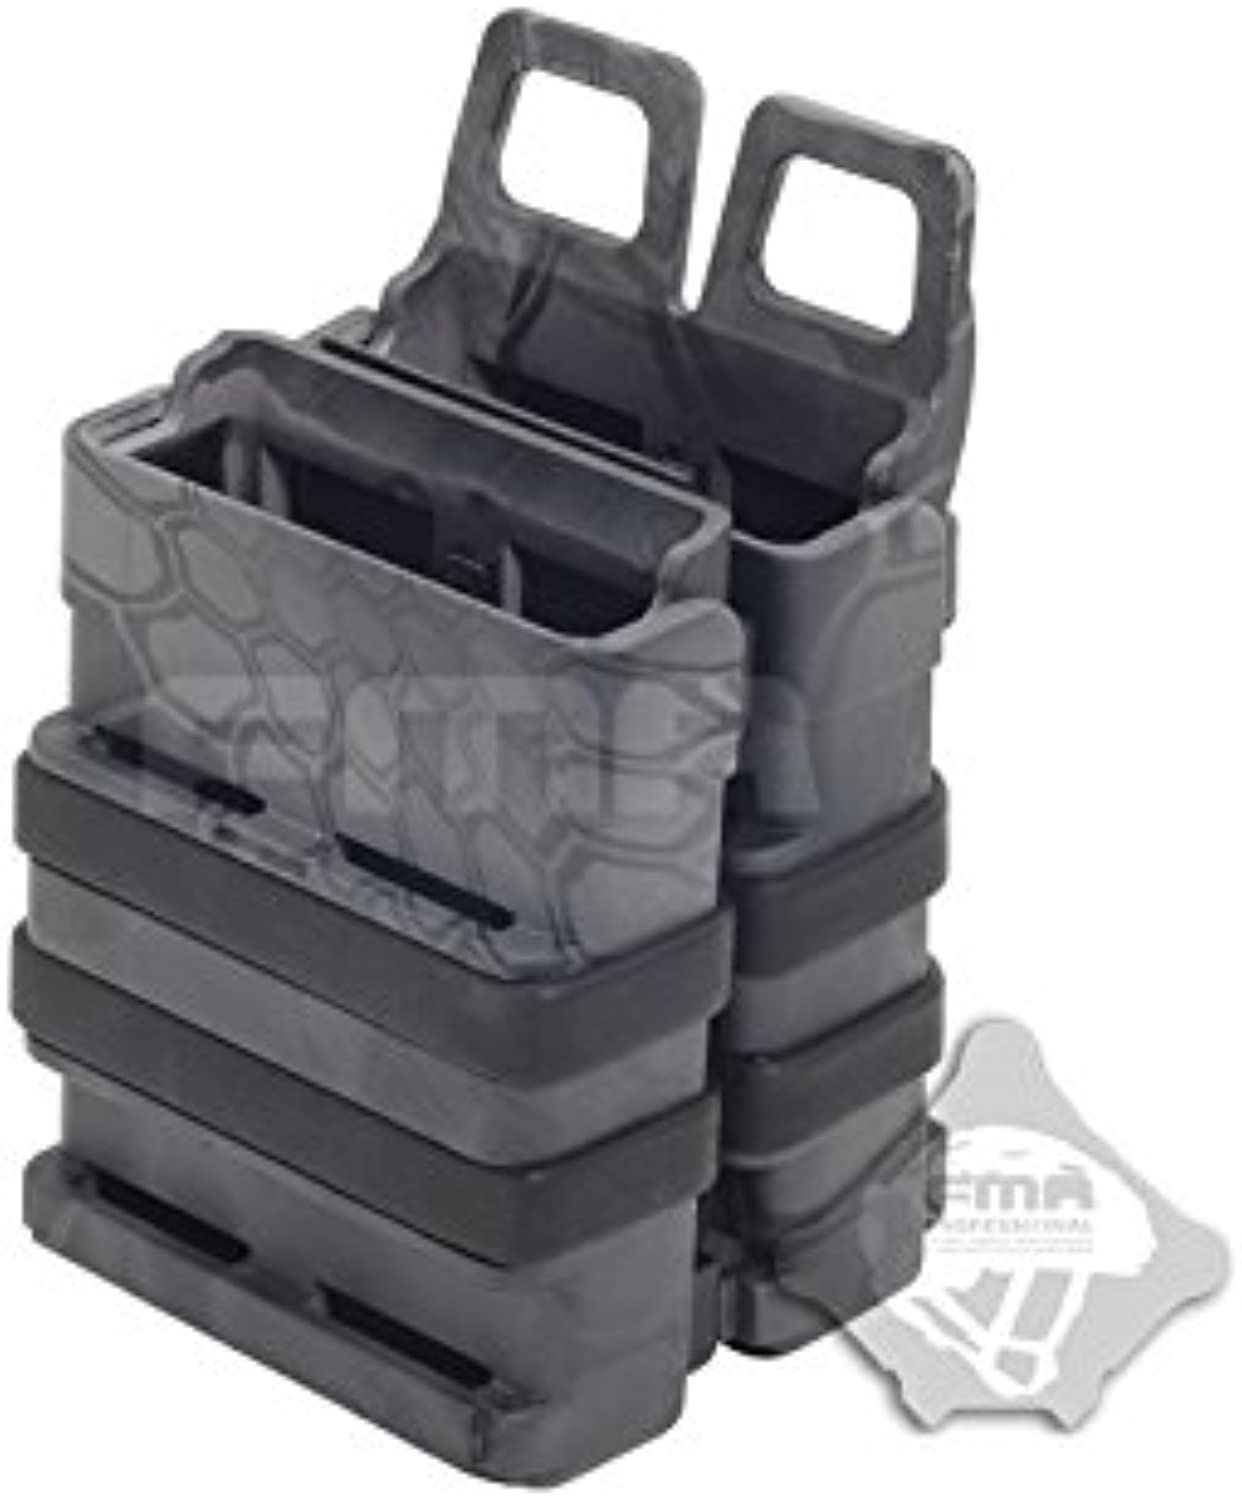 FMA Fast Magazine Holster Set Typhon for 5.56 Airsoft Paintball Fast Mag